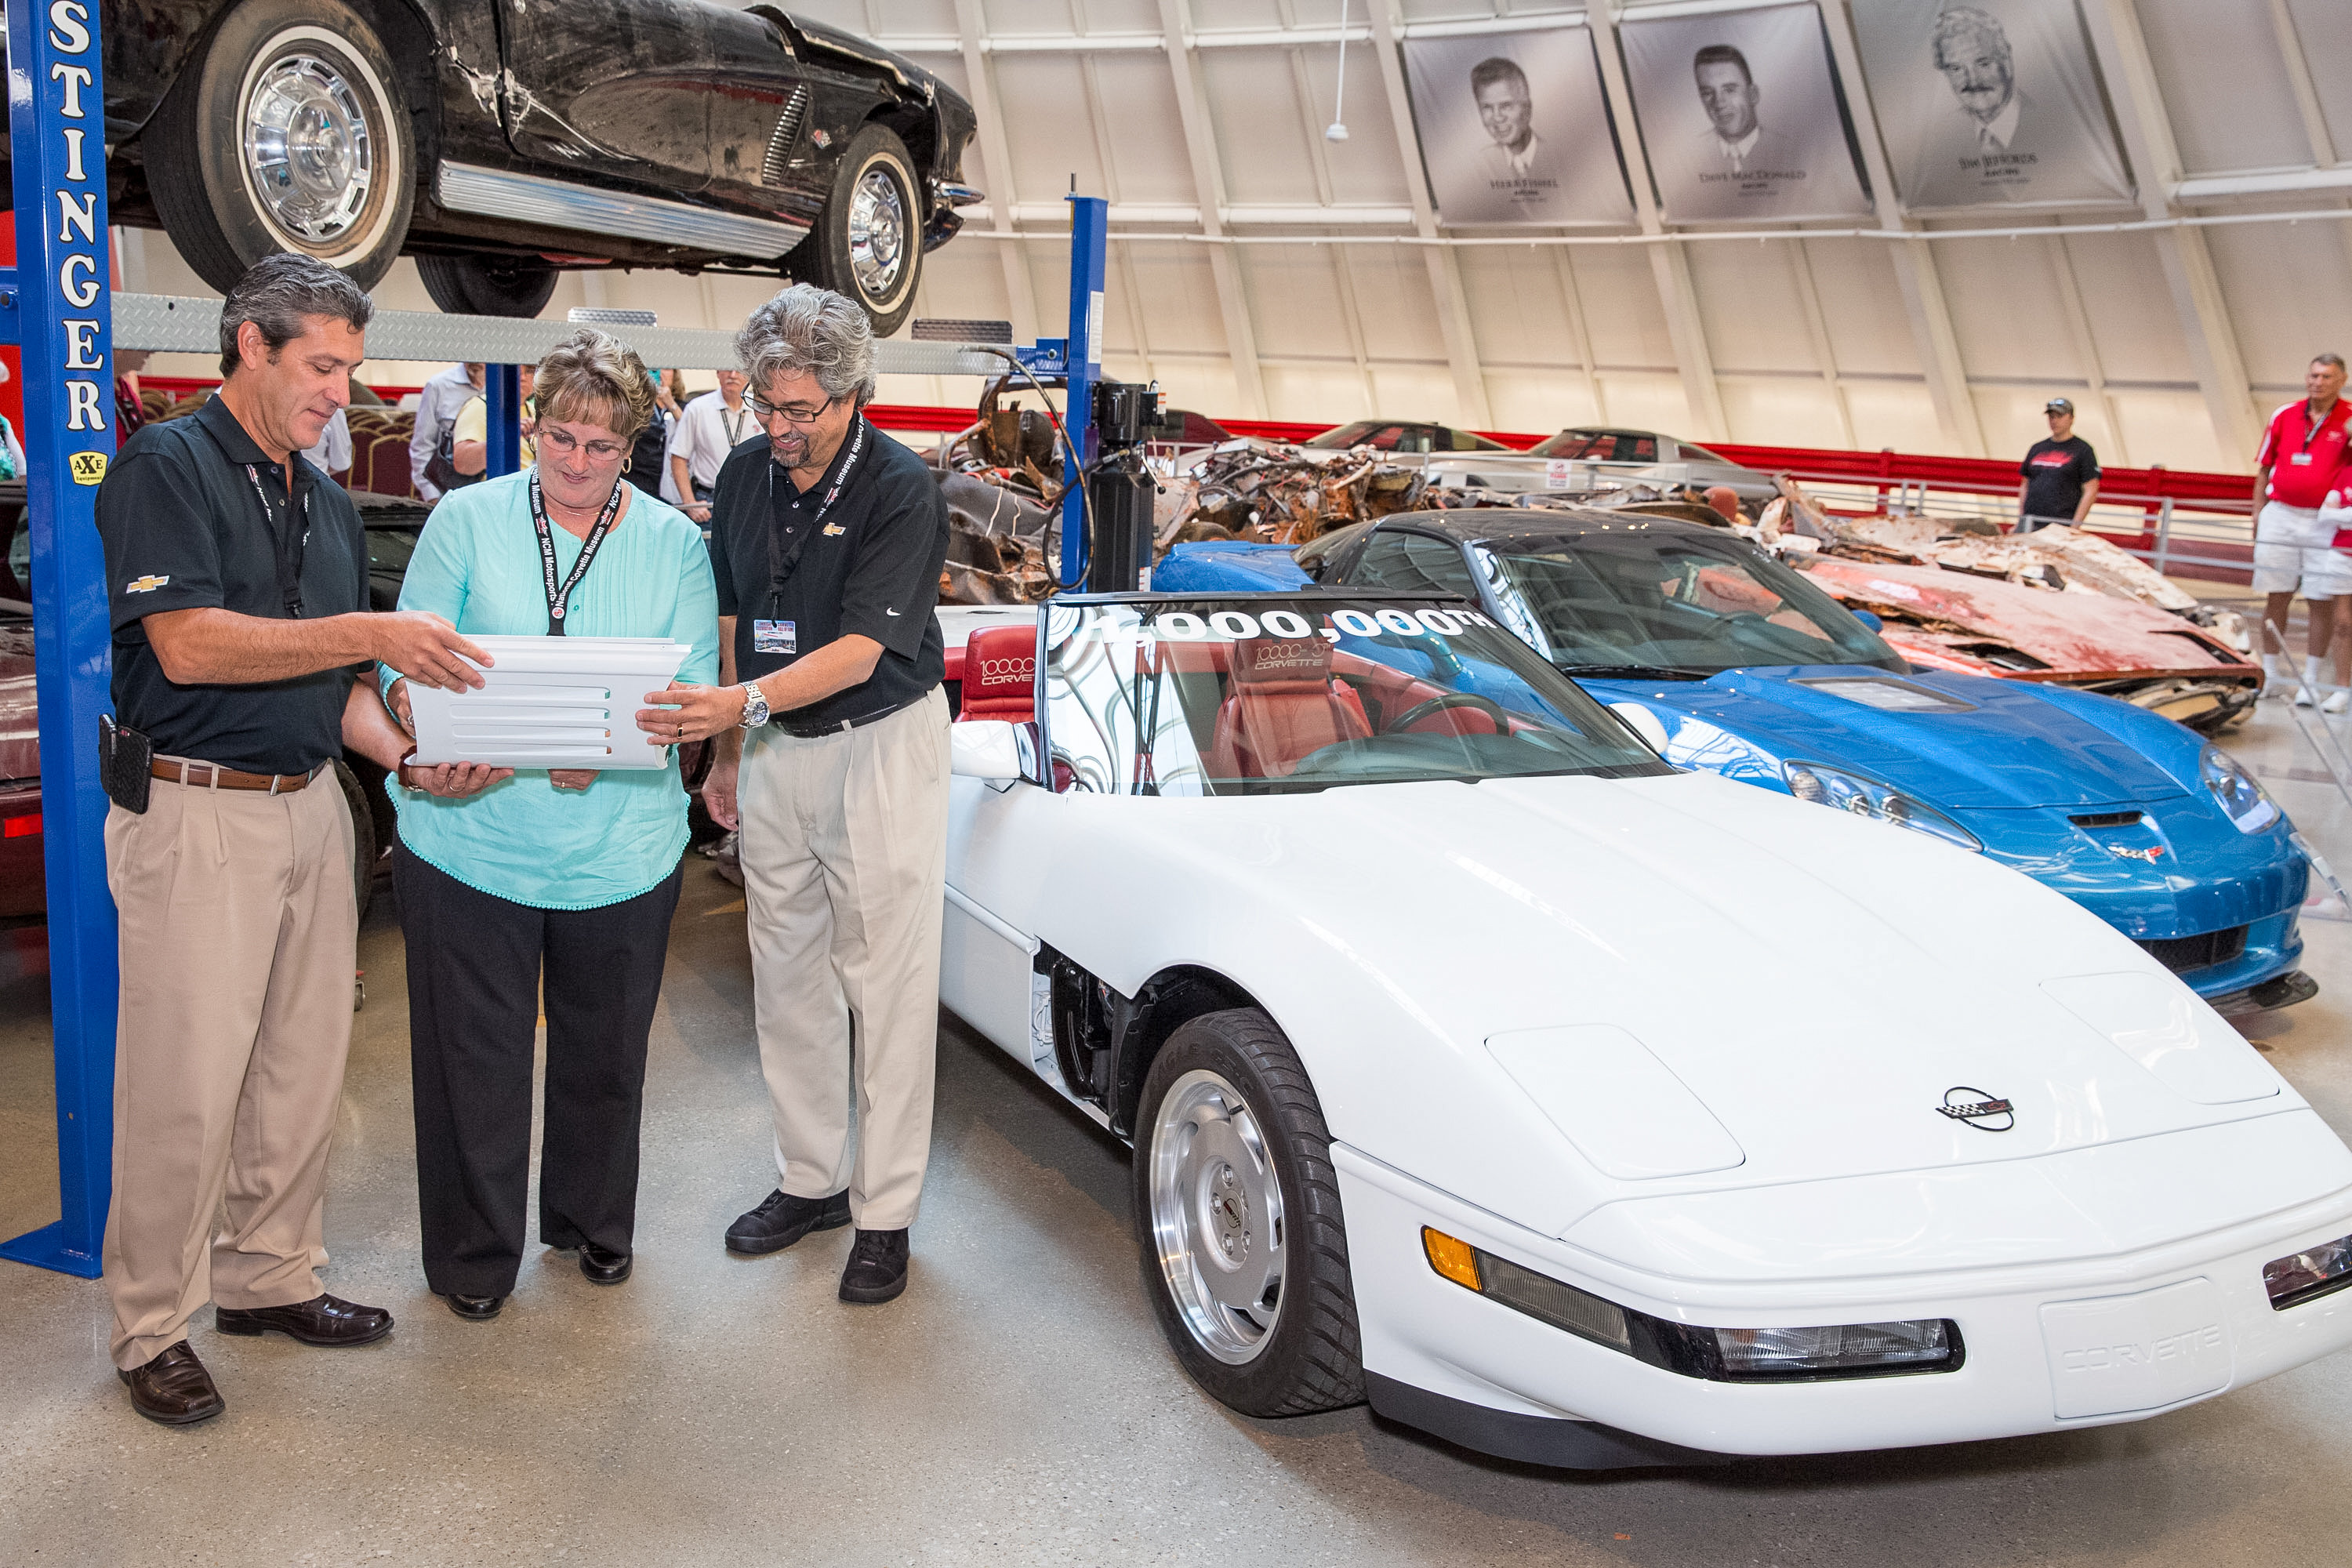 With David Bolognino and design stafferJohn Cafaro on hand, Angela Lamb adds her signature to the final panel needed to restore the 1 Millionth Corvette | Chevrolet photos by John F. Martin